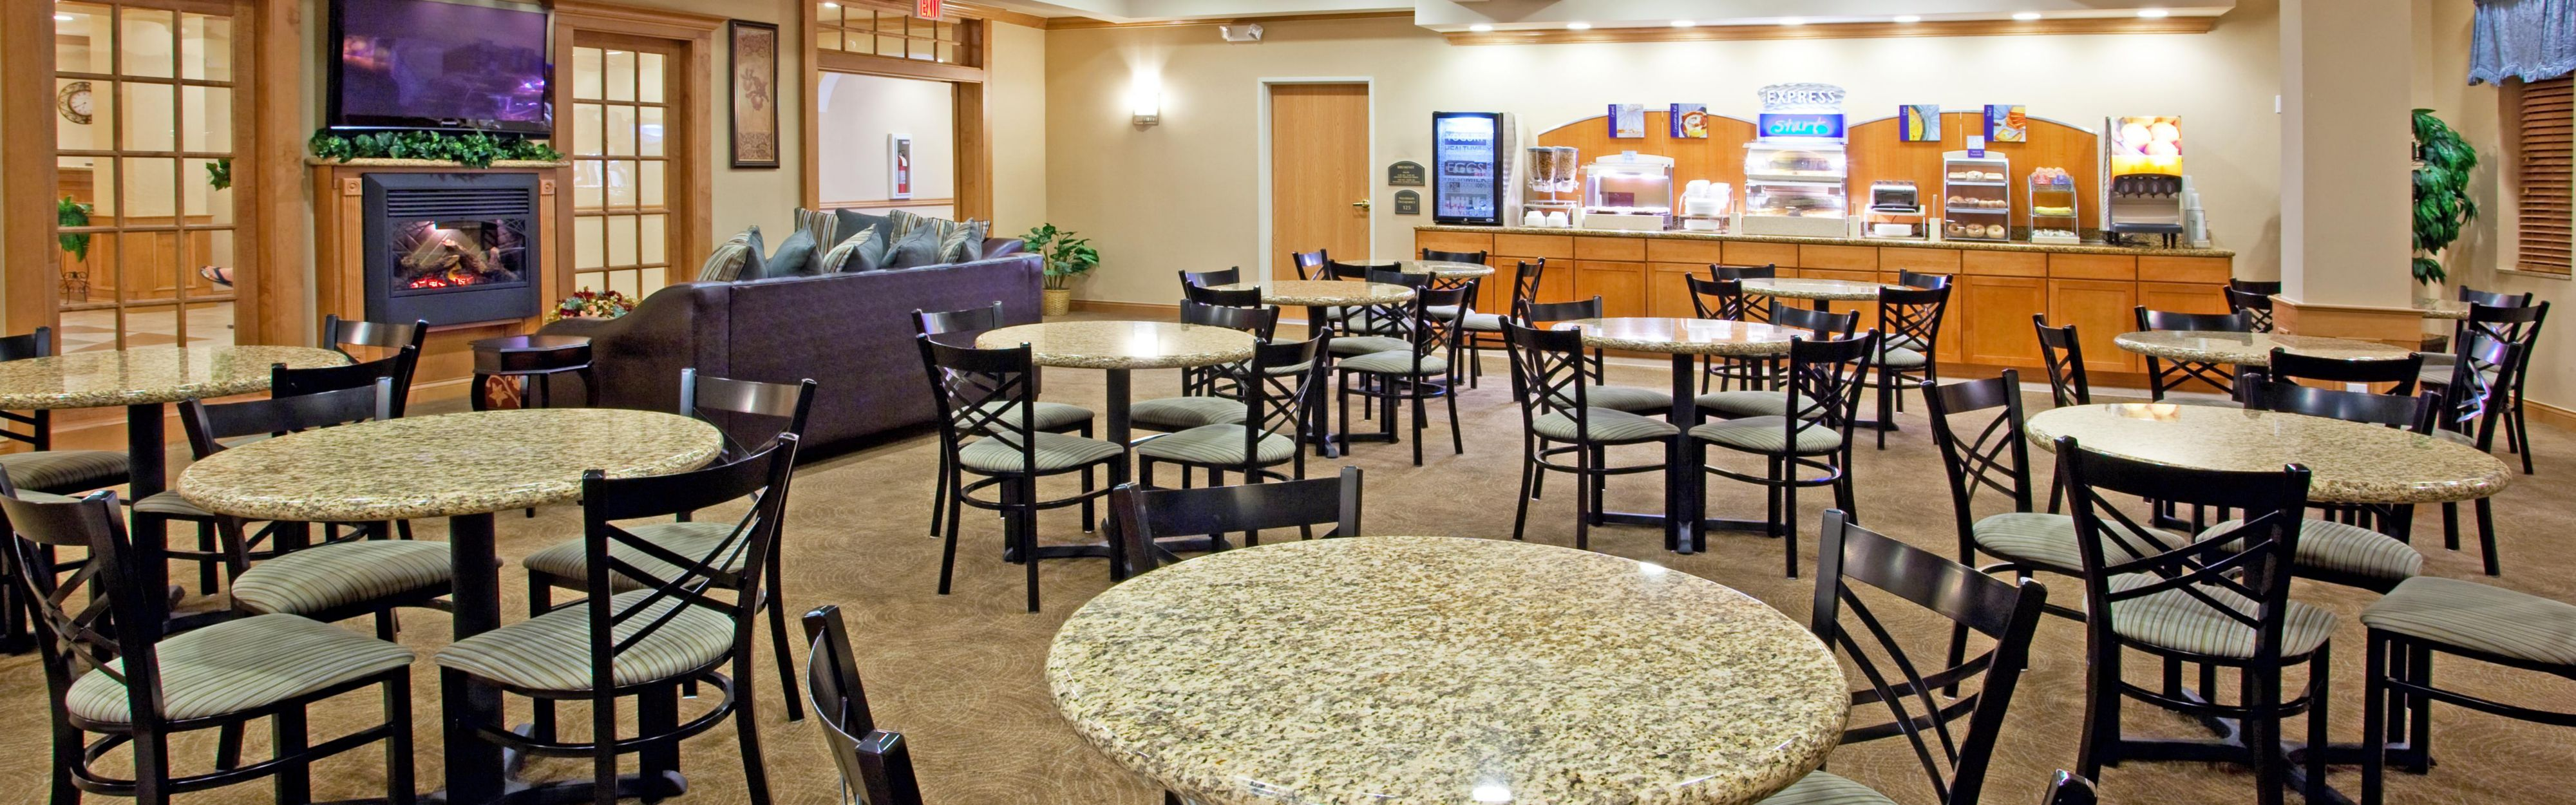 Holiday Inn Express & Suites Chesterfield - Selfridge Area image 3